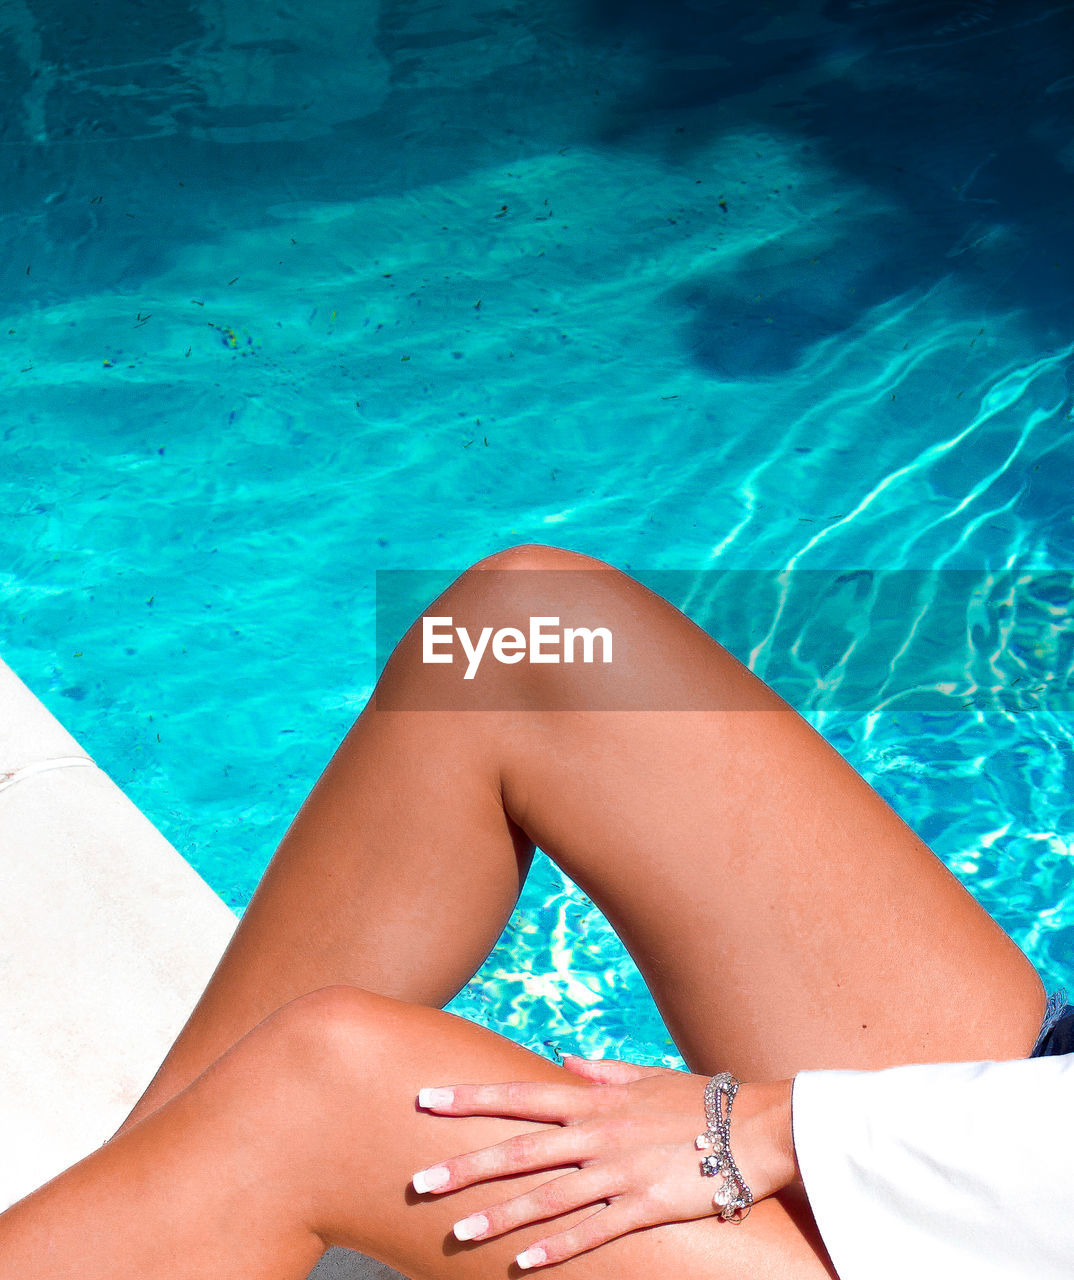 Midsection of woman by swimming pool